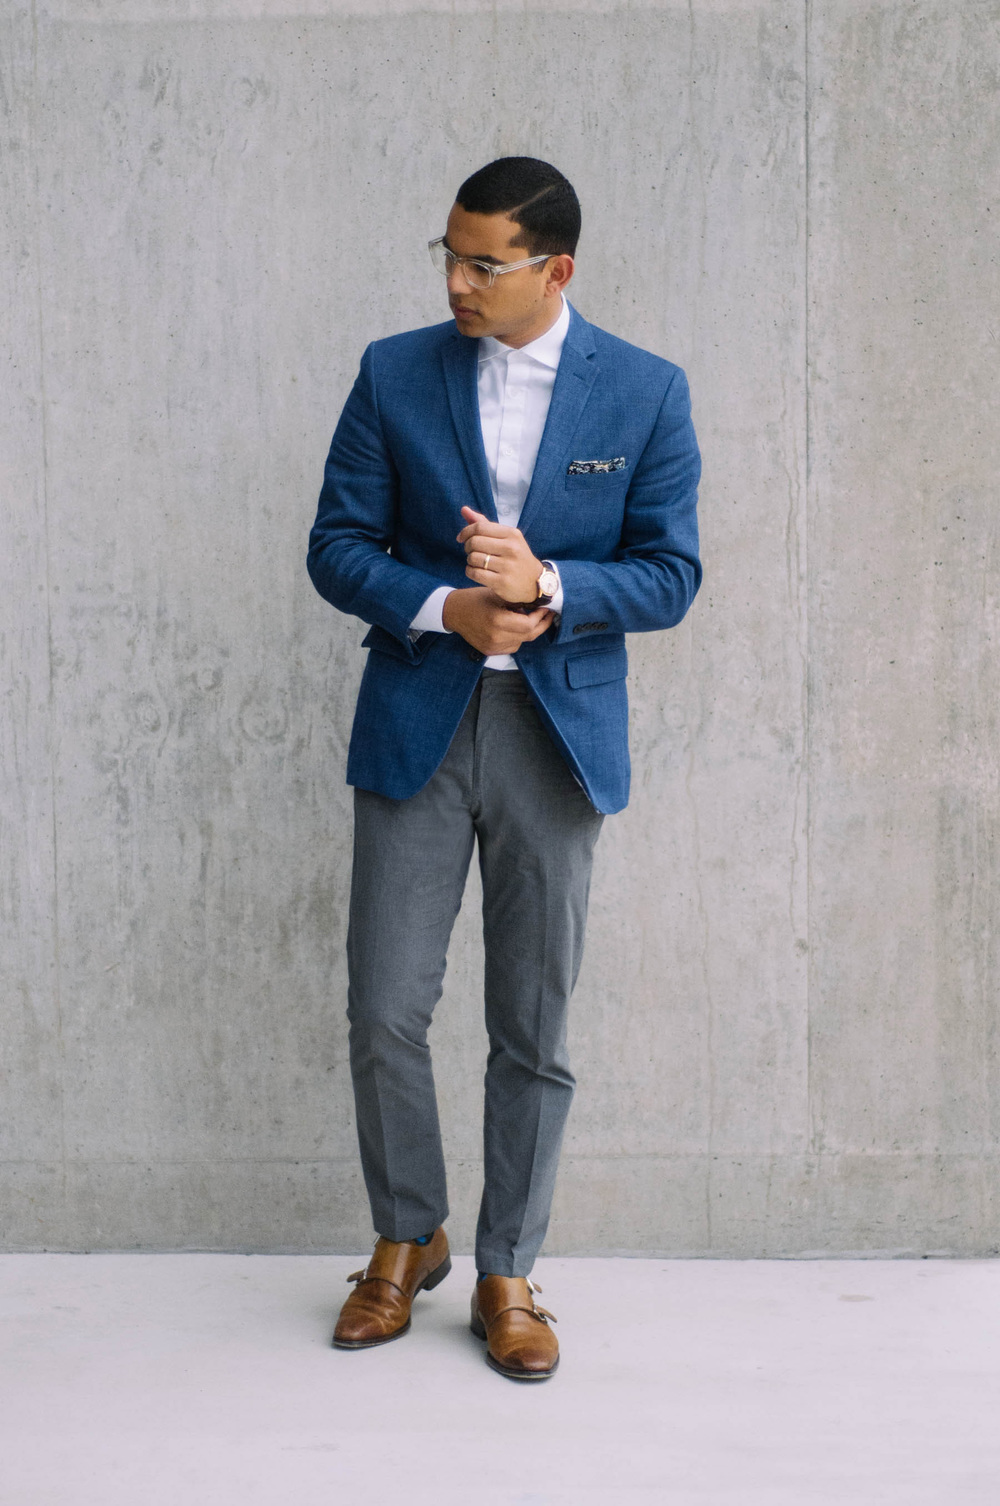 Blazer: H&M (similar  here ) | Shirt: H&M (similar  here ) | Pants: J.Crew | Shoes:  Magnanni  | Pocket Square: J.Crew (also love  this one ) | Watch: Omega (similar  here ) | Socks: J.Crew ( these  are great too) | Glasses: Moscot